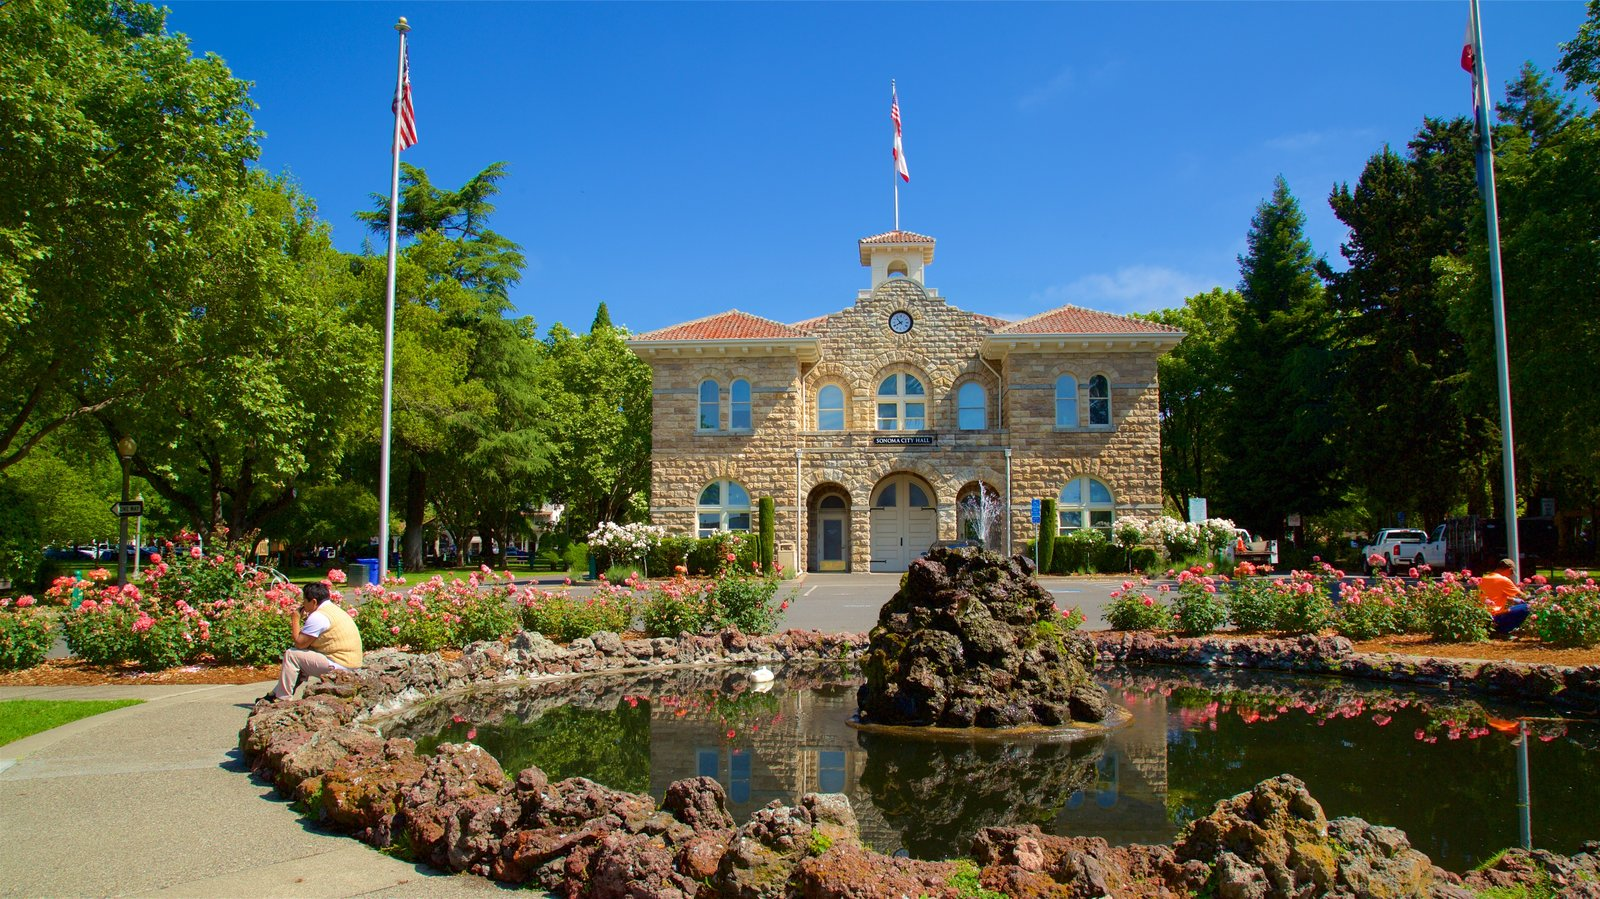 Sonoma Plaza showing flowers, heritage elements and a park